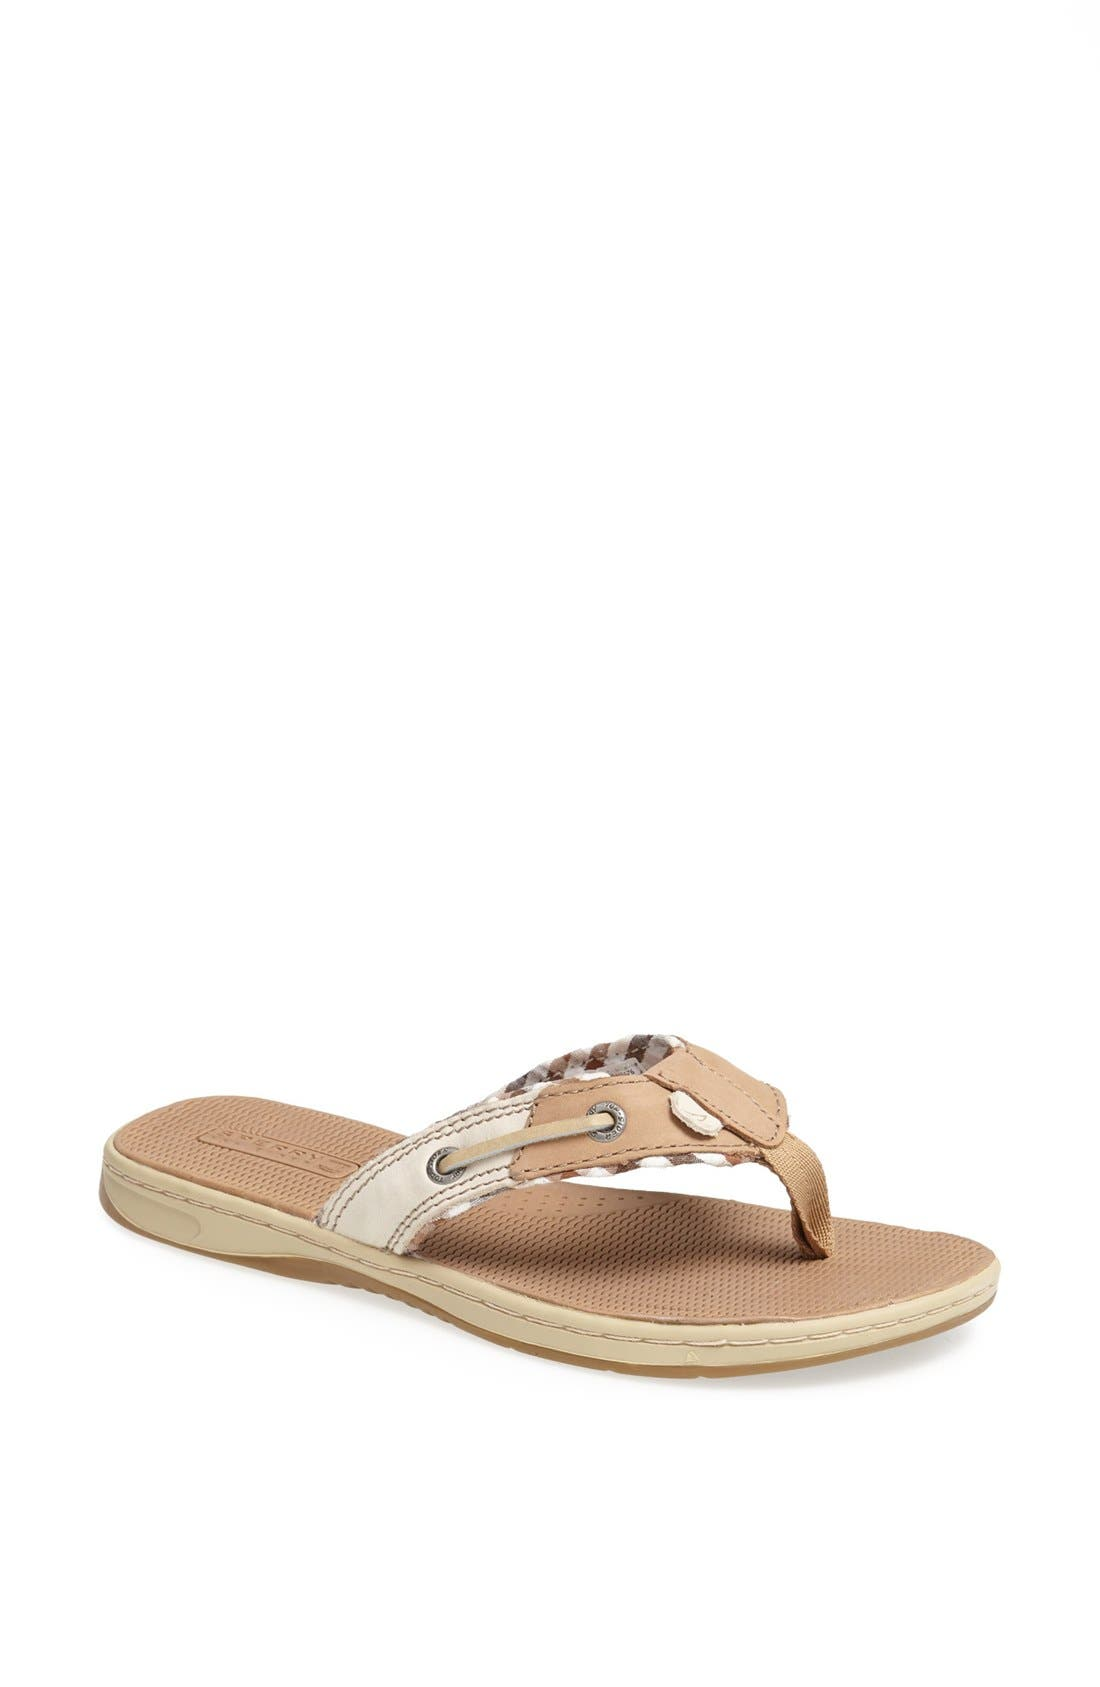 Main Image - Sperry Top-Sider® 'Seafish' Flip Flop